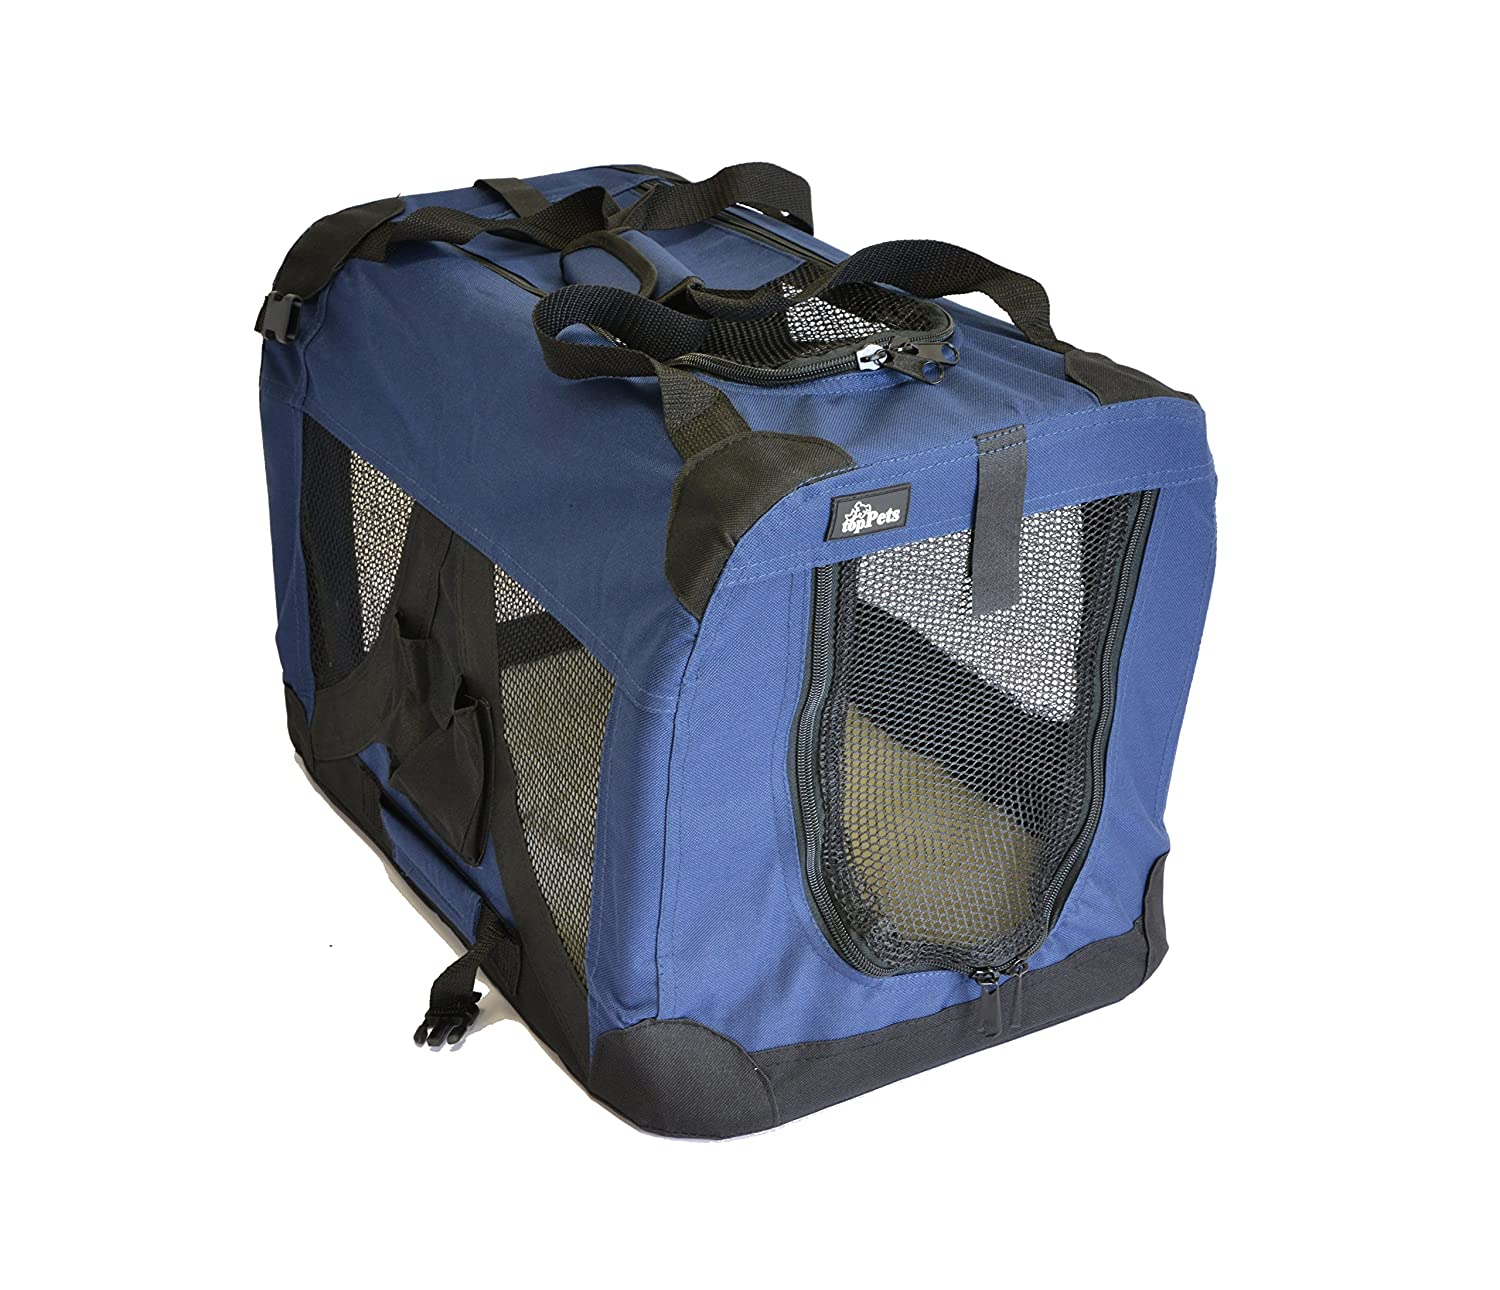 Dark bluee Small  20\ Dark bluee Small  20\ topPets Portable Soft Pet Carrier or Crate or Kennel for Dog, Cat, or Other Small Pets. Great for Travel, Indoor, and Outdoor (Dark bluee, Small  20 x14 x14 )